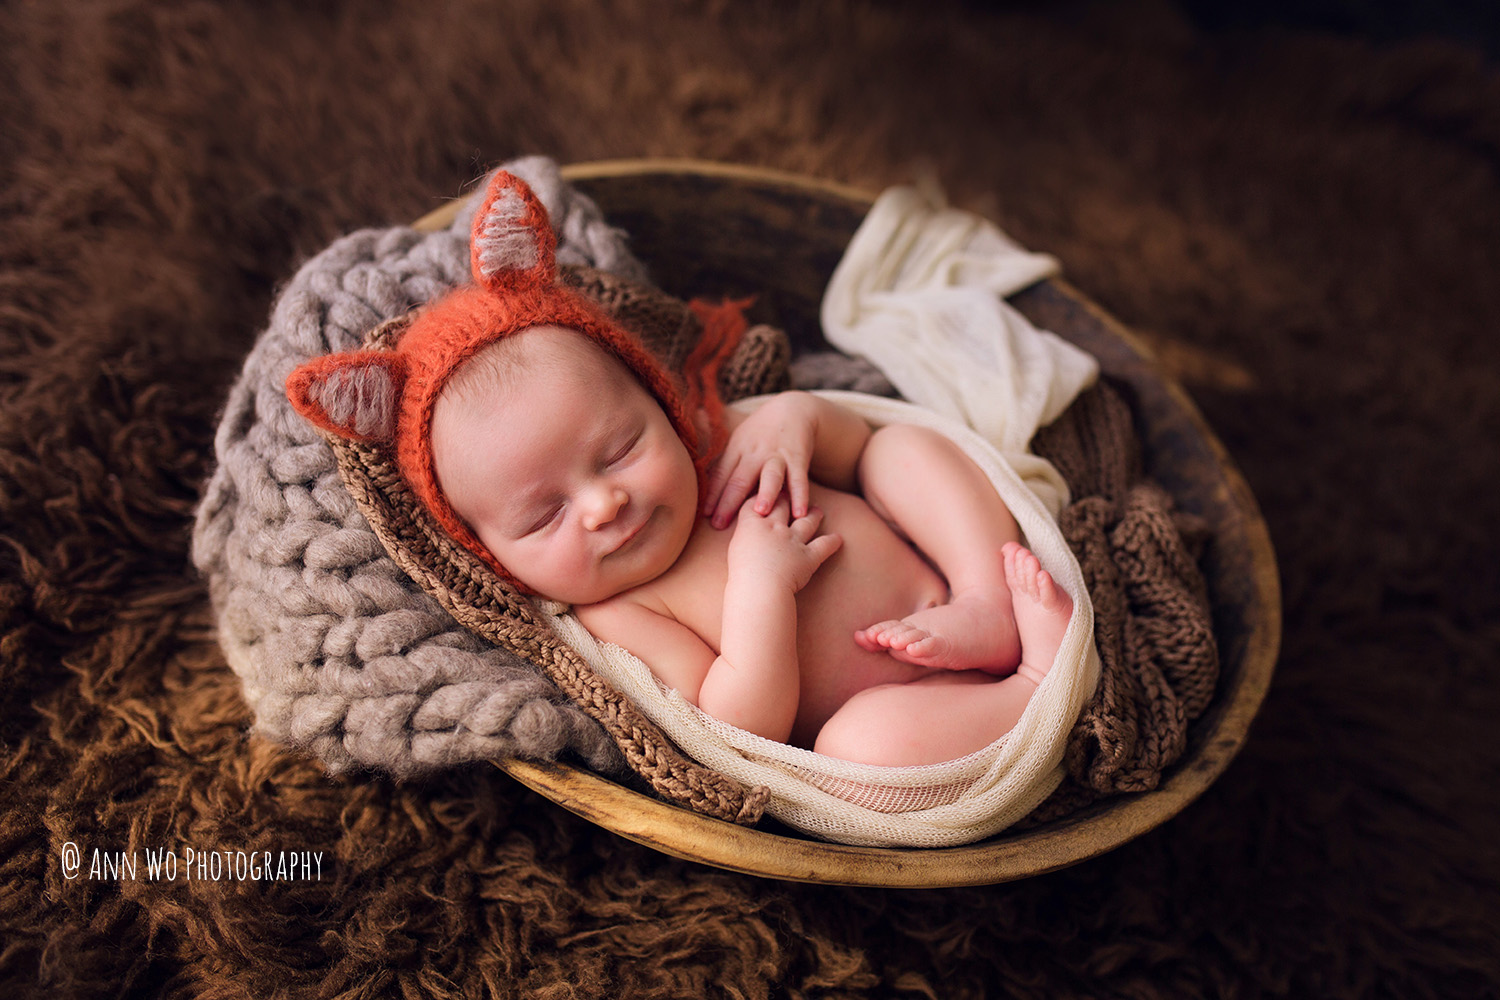 Newborn photography in London by Ann Wo rustic basket